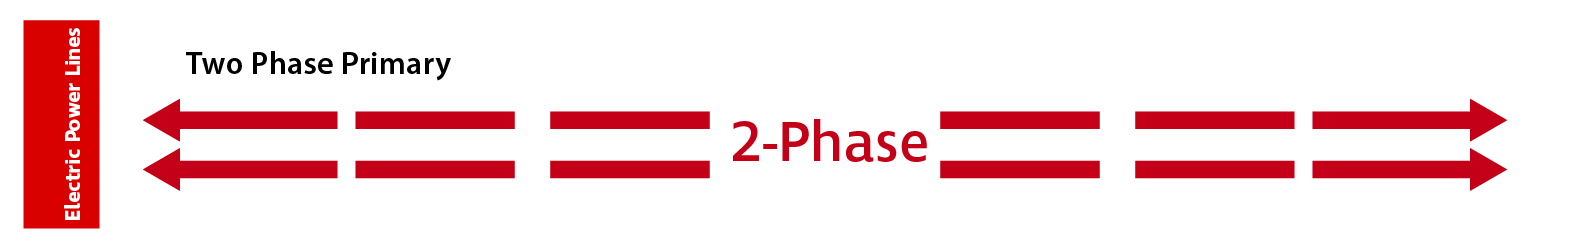 used to mark two phase primary